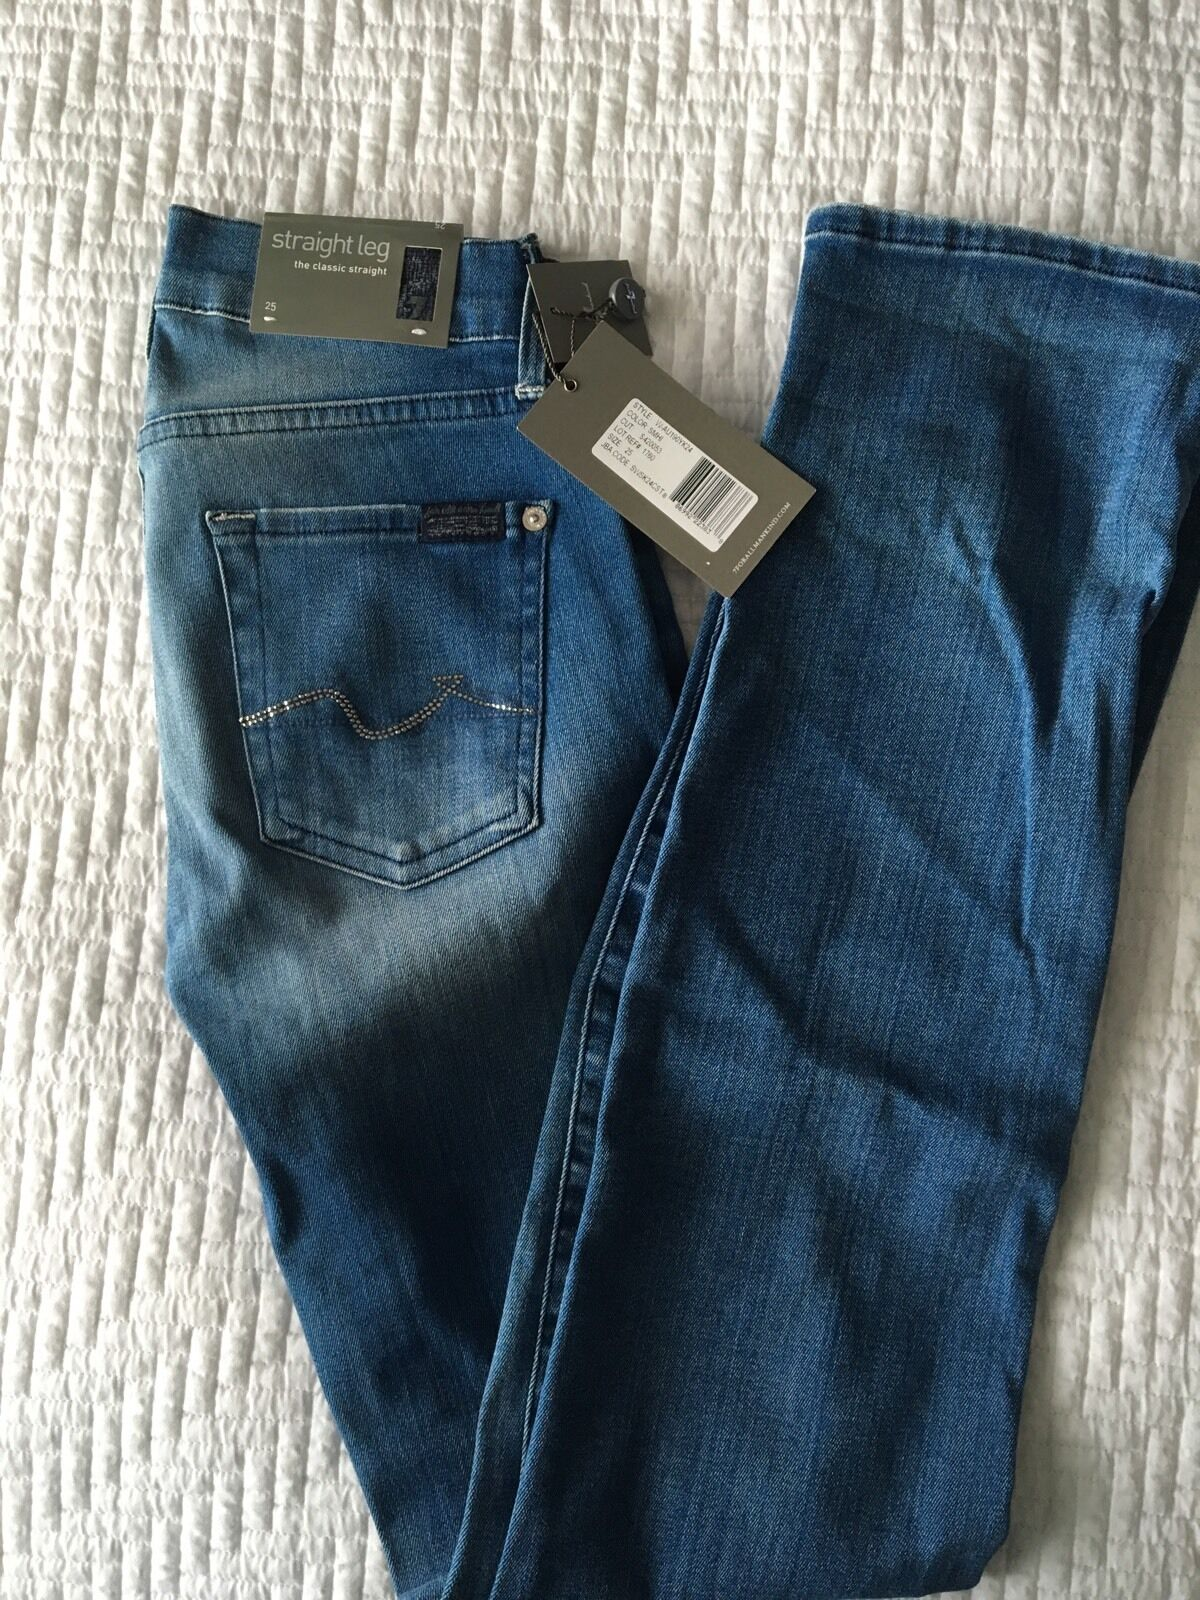 7 For All Mankind Women's Jeans Original Brand New Size 25  bluee skinny